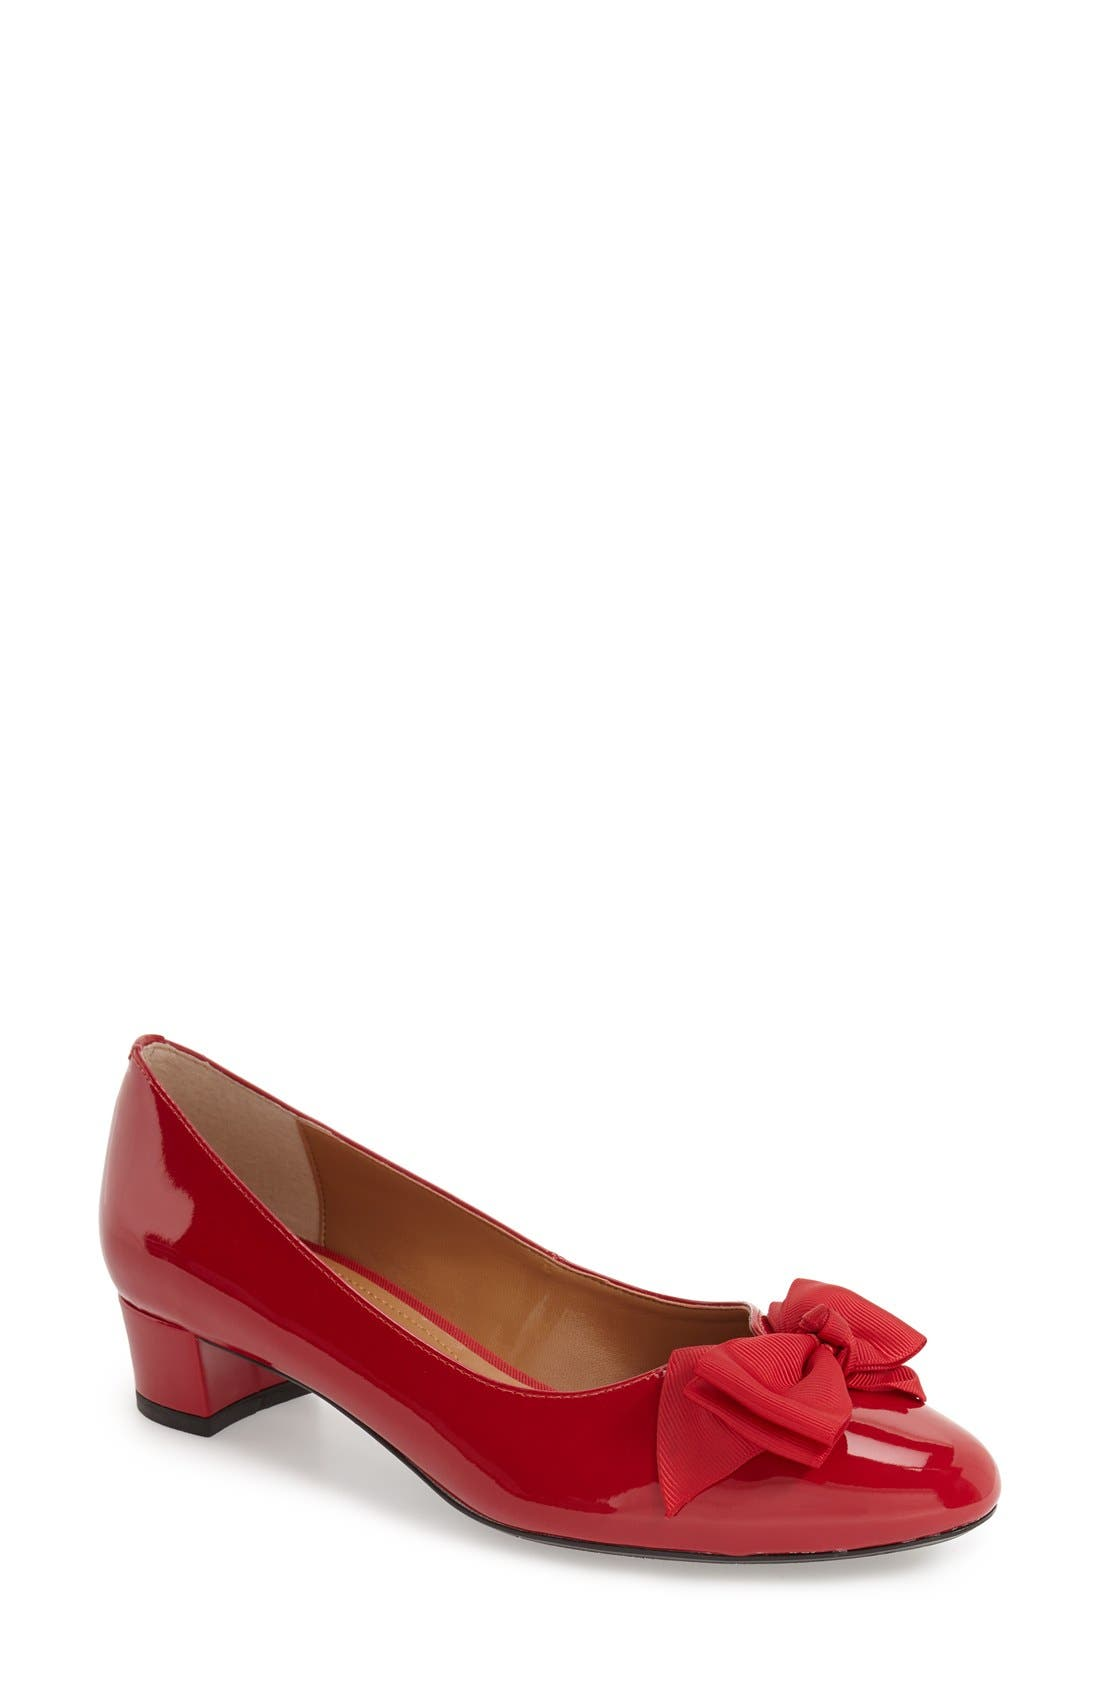 Rockabilly Shoes- Heels, Pumps, Boots, Flats Womens J. Renee Cameo Bow Pump Size 10.5 D - Red $89.95 AT vintagedancer.com